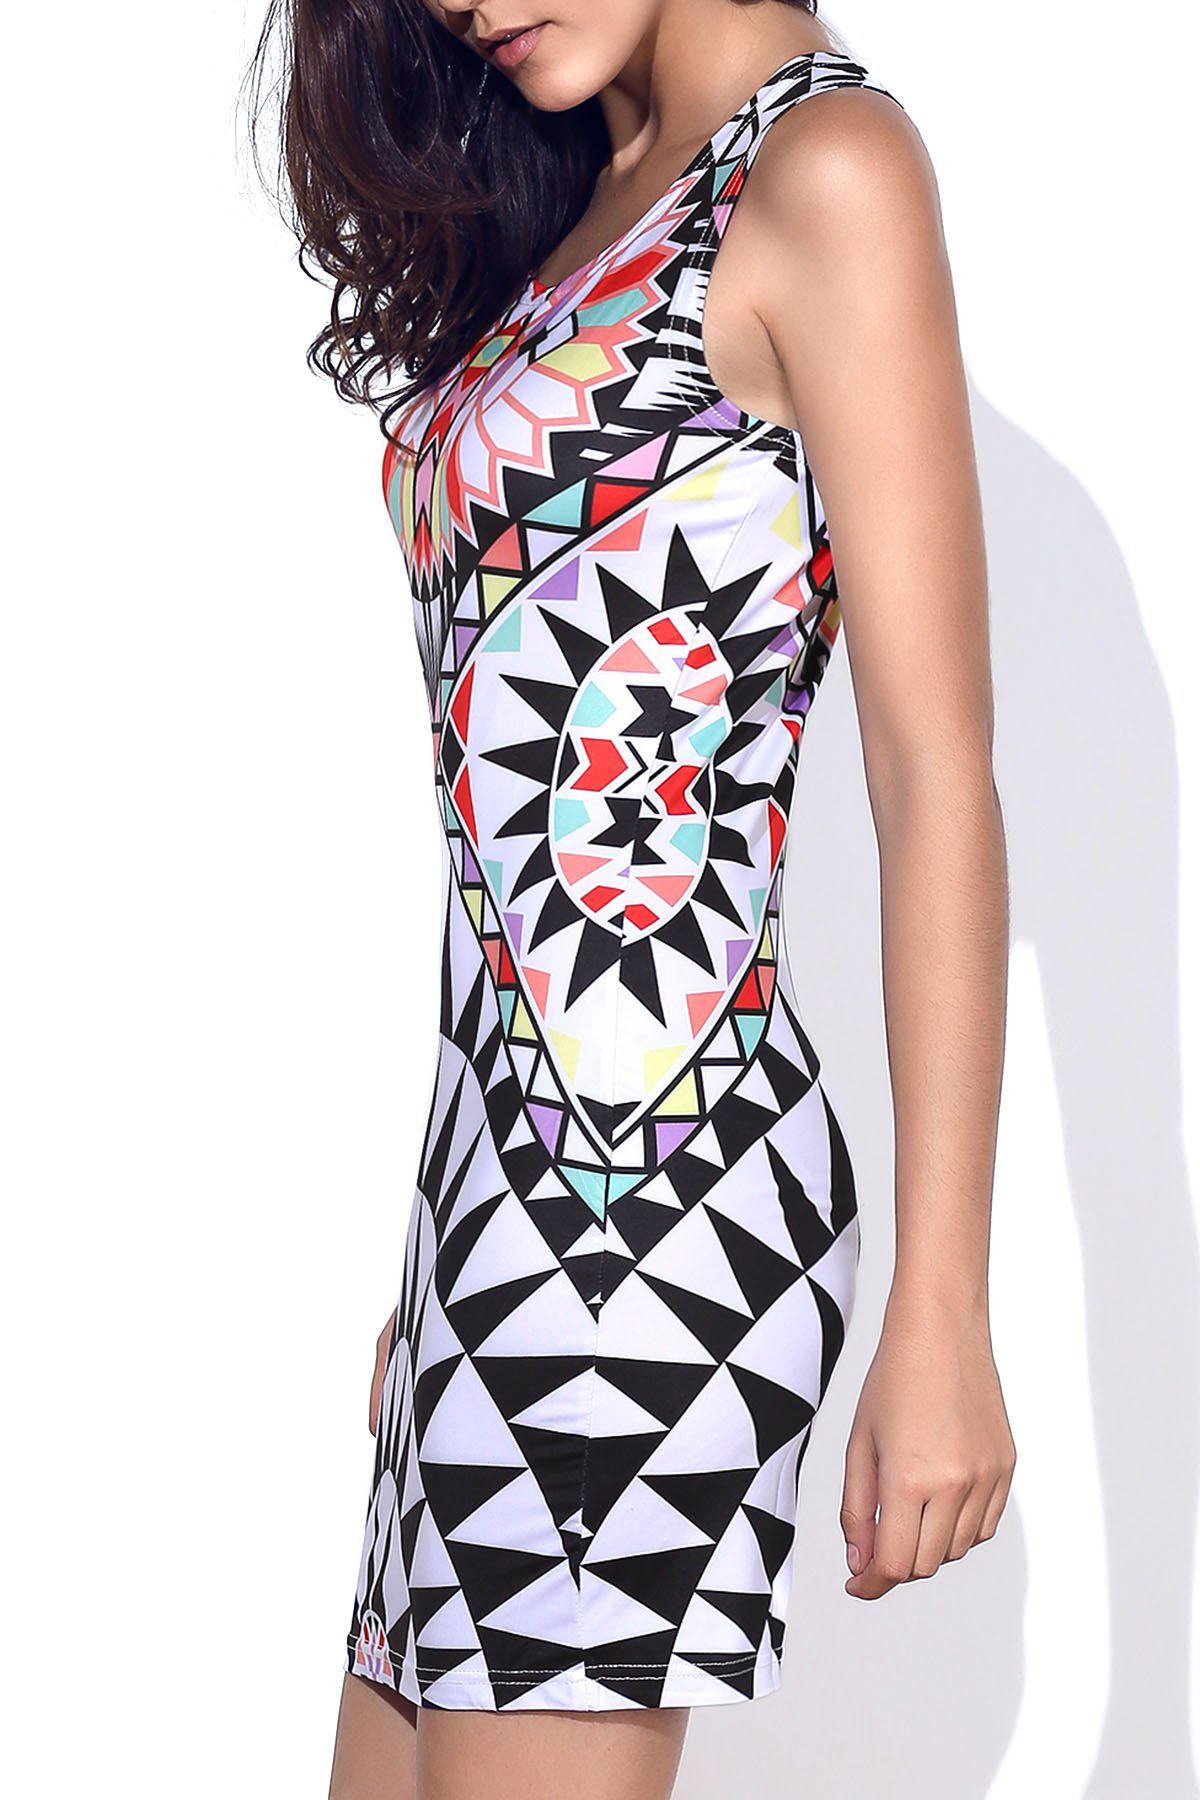 Stylish Round Neck Geometric Pattern Sleeveless Women's Bodycon Dress - COLORMIX M